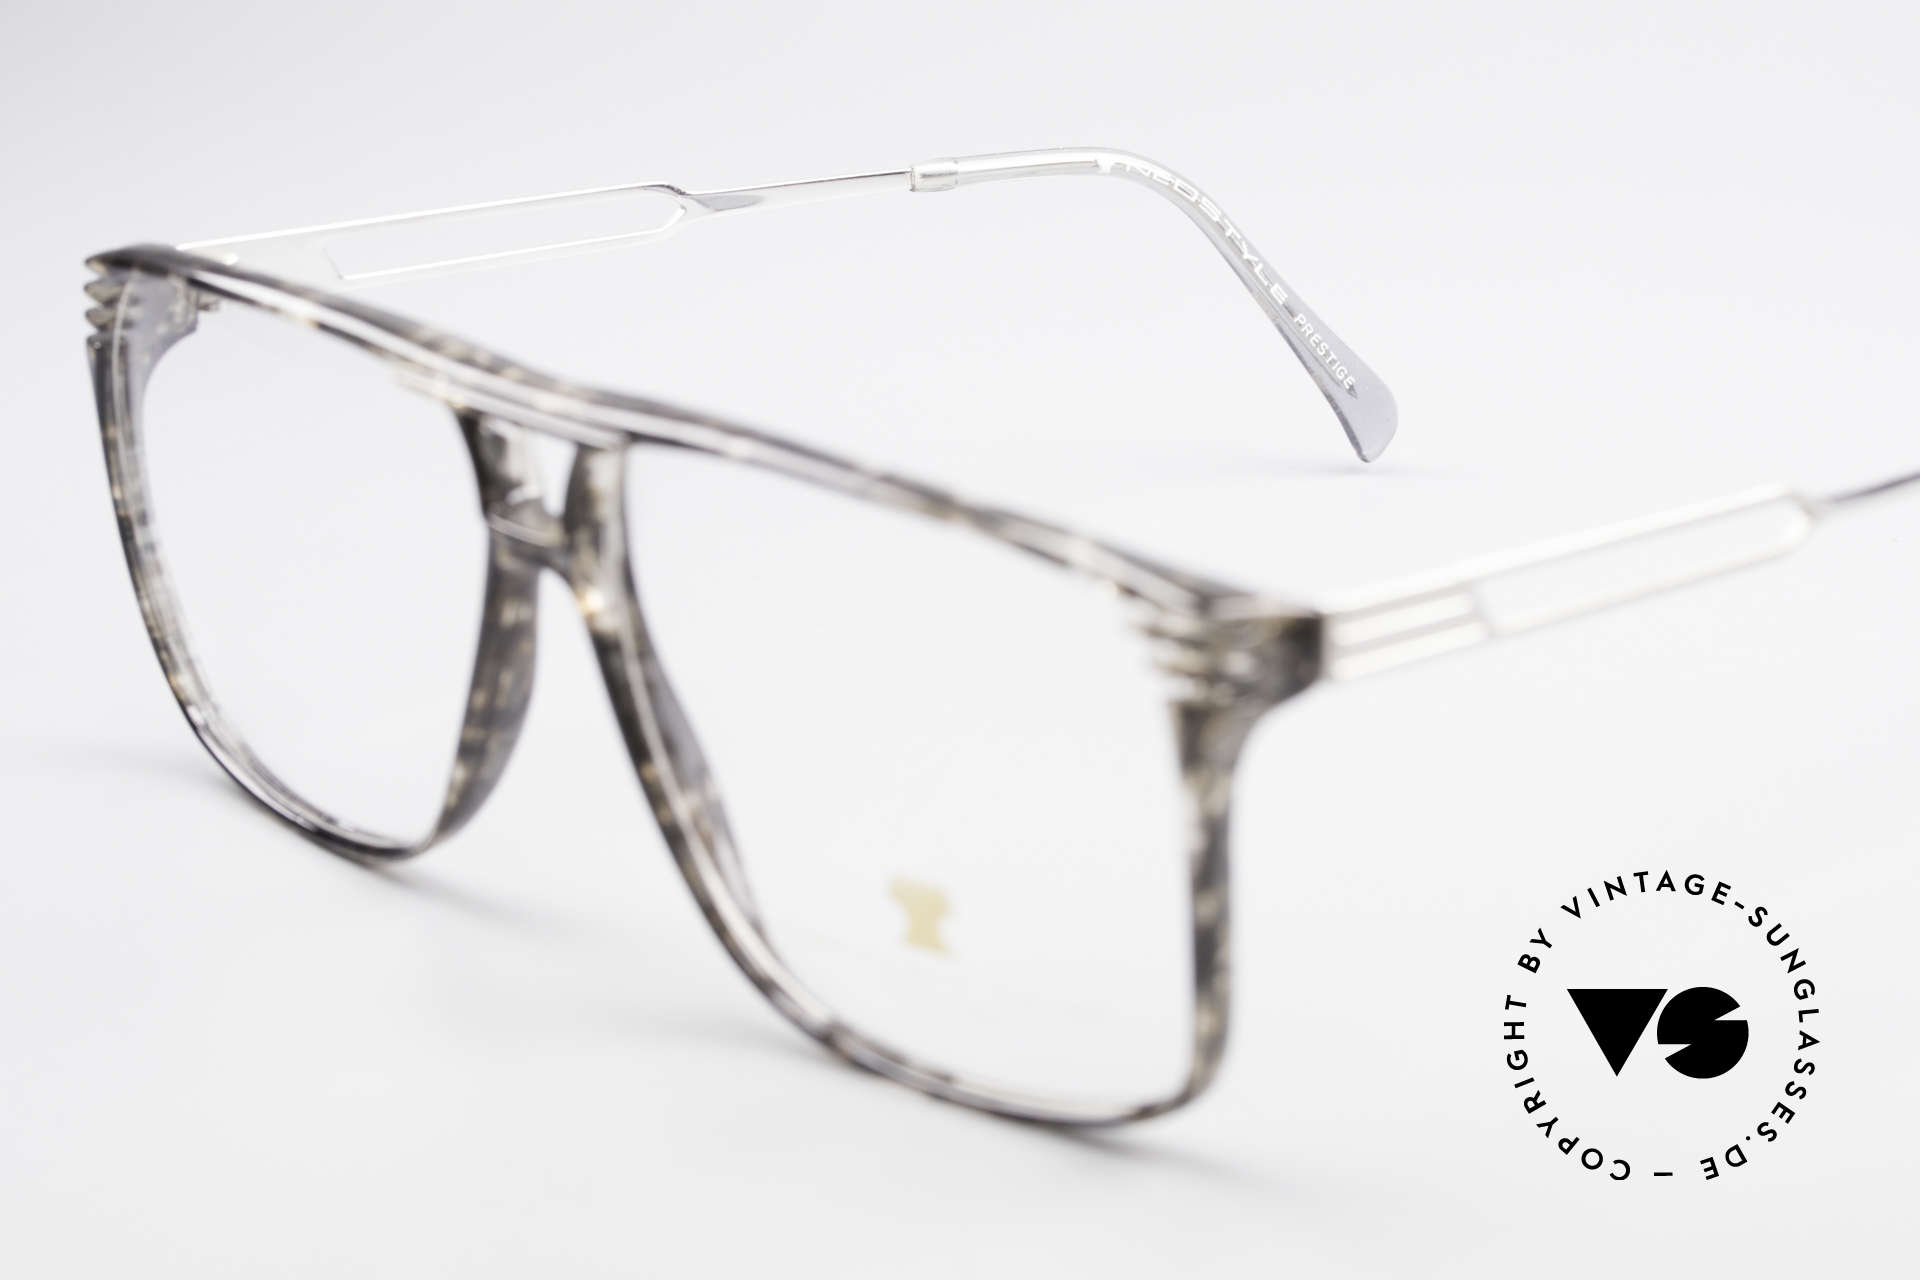 Neostyle Rotary Prestige 33 Titan Frame 80's Eyeglasses, unworn, one of a kind; like all our vintage Neostyles, Made for Men